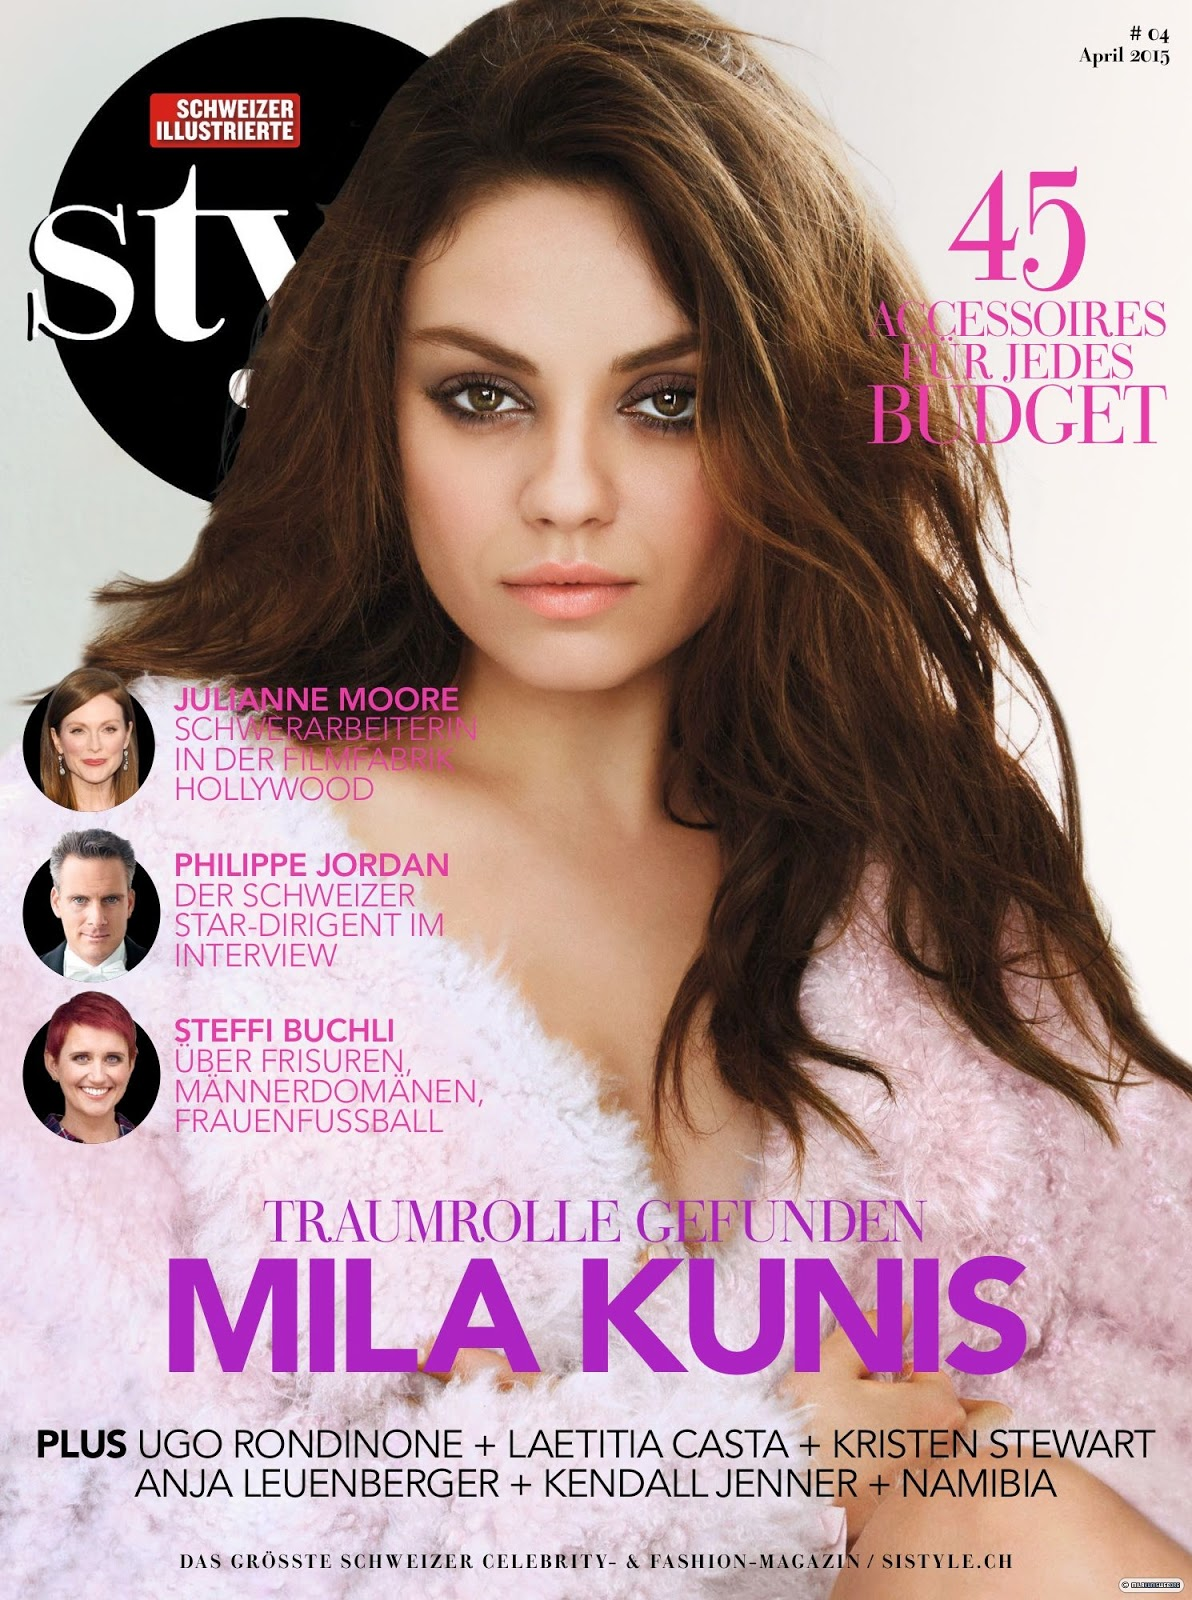 Actress @ Mila Kunis - Si Style Switzerland, April 2015